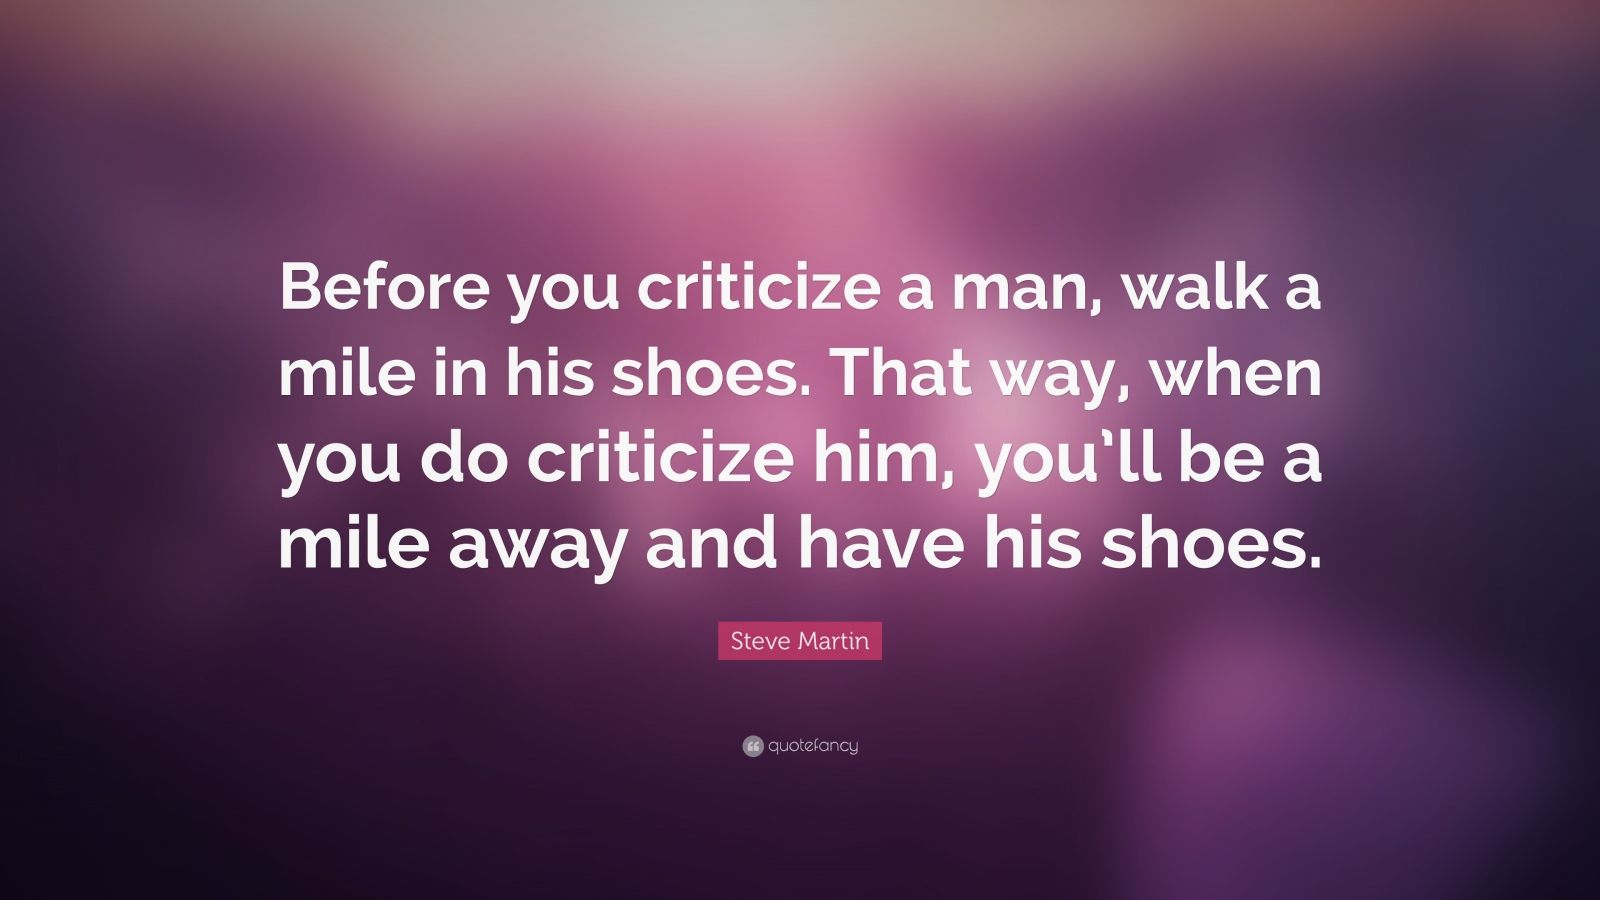 "Steve Martin Quote: ""Before you criticize a man, walk a mile in his shoes. That way, when you do criticize him, you'll be a mile away and have his shoes."""